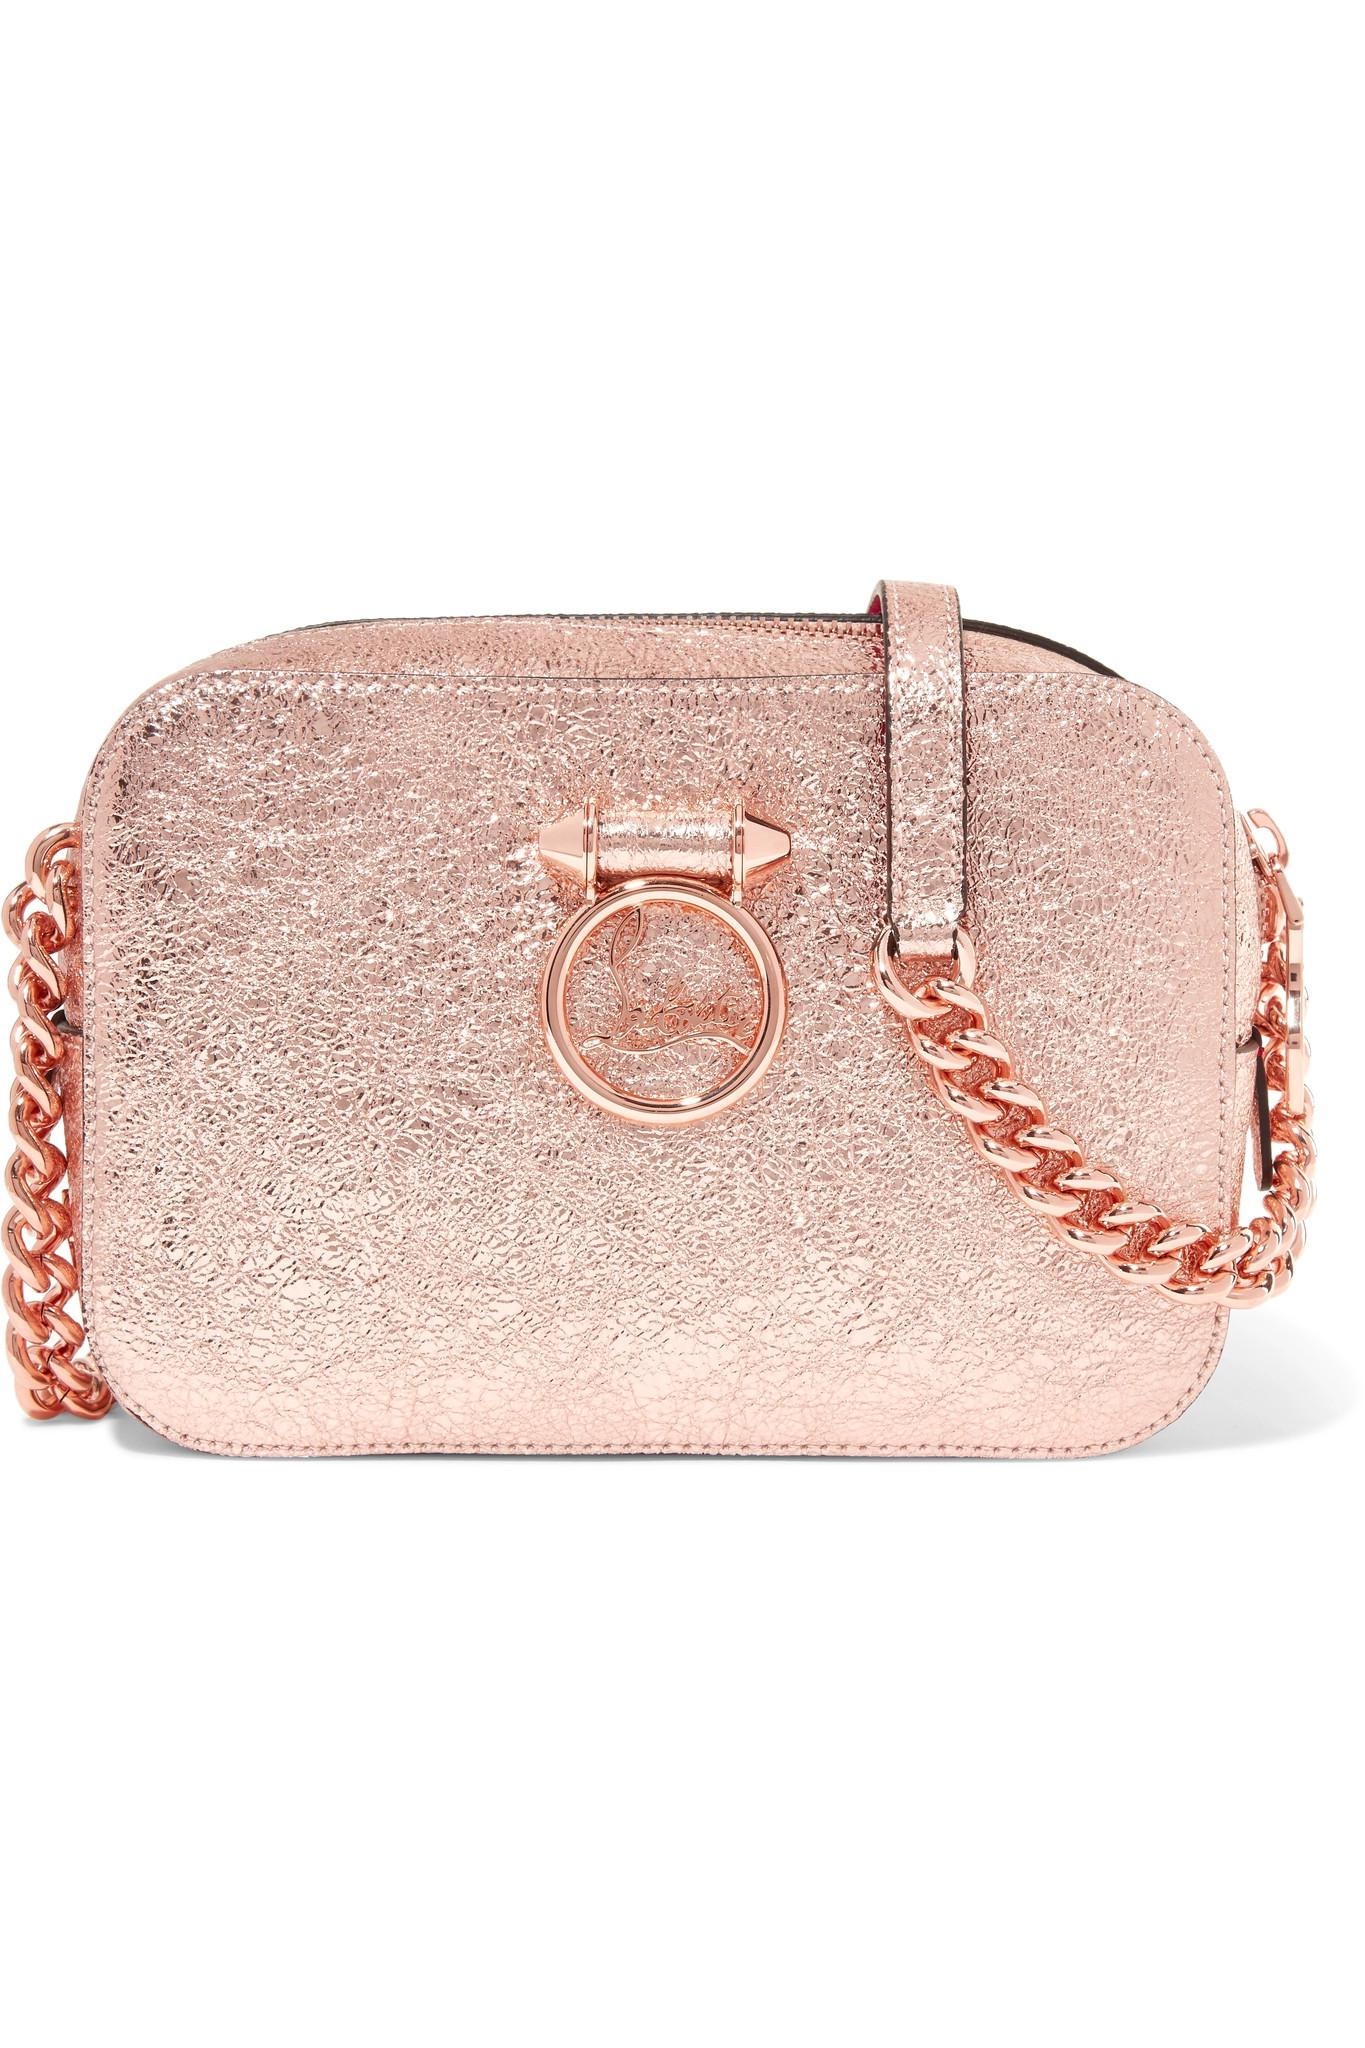 7b86c3bc5caf Christian Louboutin. Women s Pink Rubylou Metallic Textured-leather  Shoulder Bag